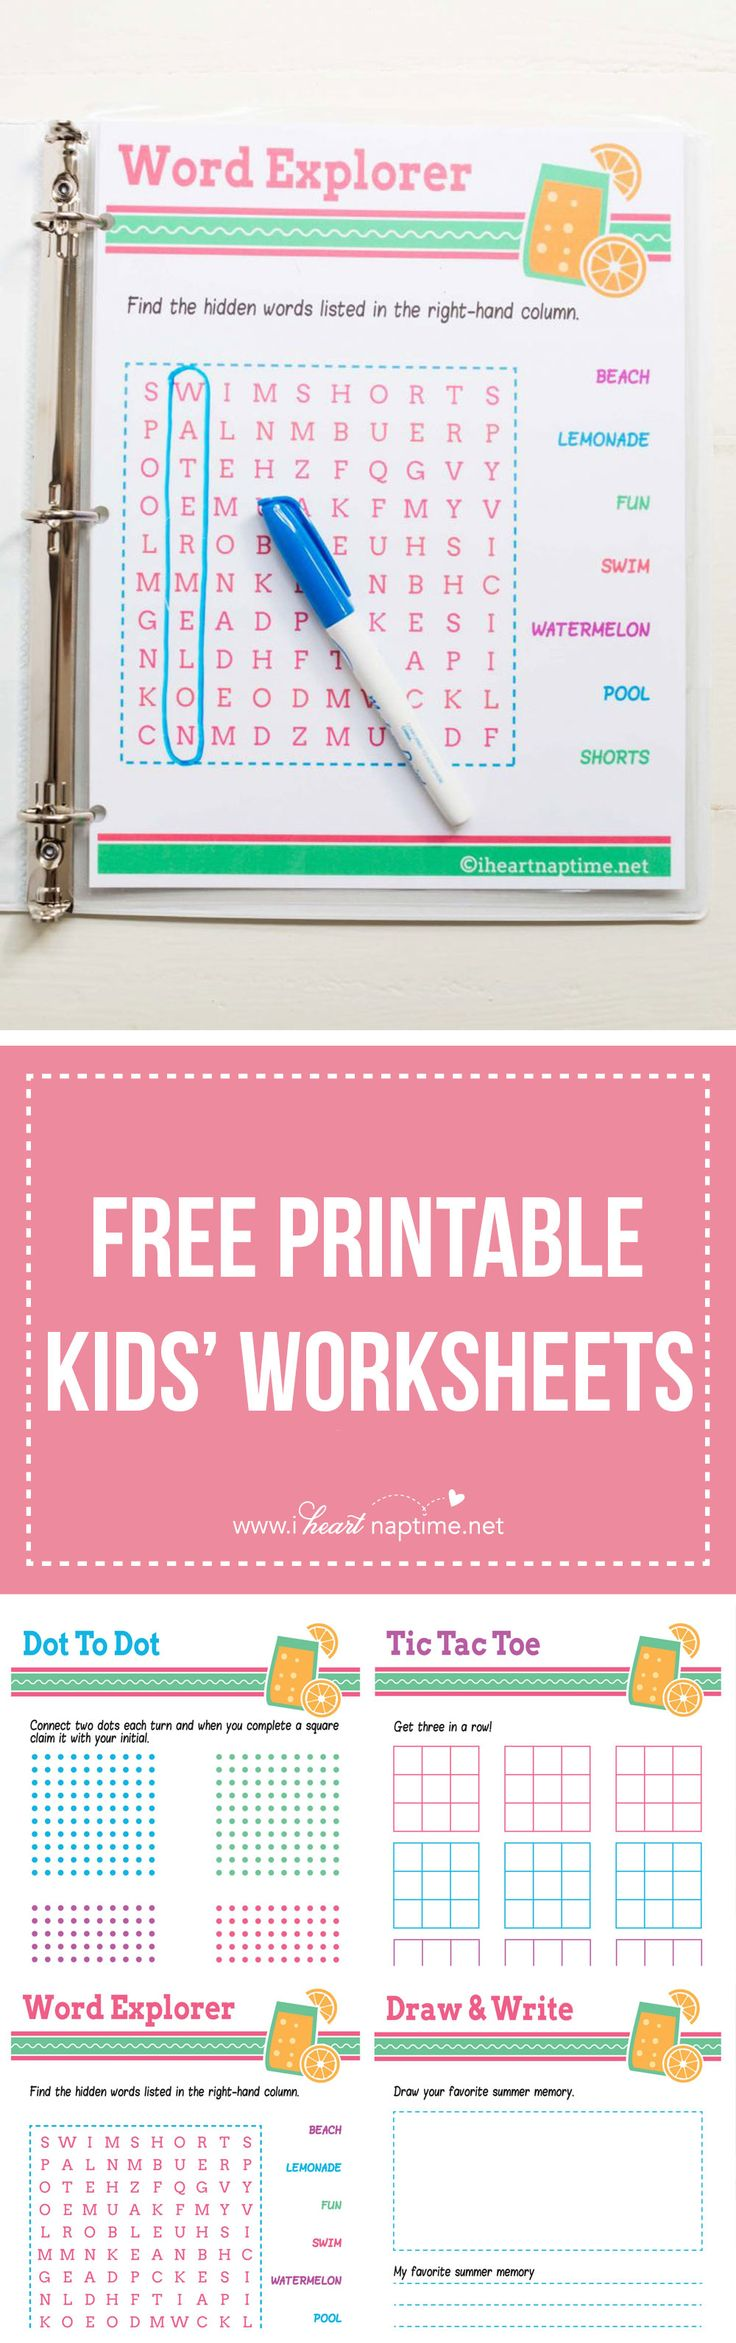 FREE PRINTABLE kids' worksheets ...perfect for putting in a binder for road trips!